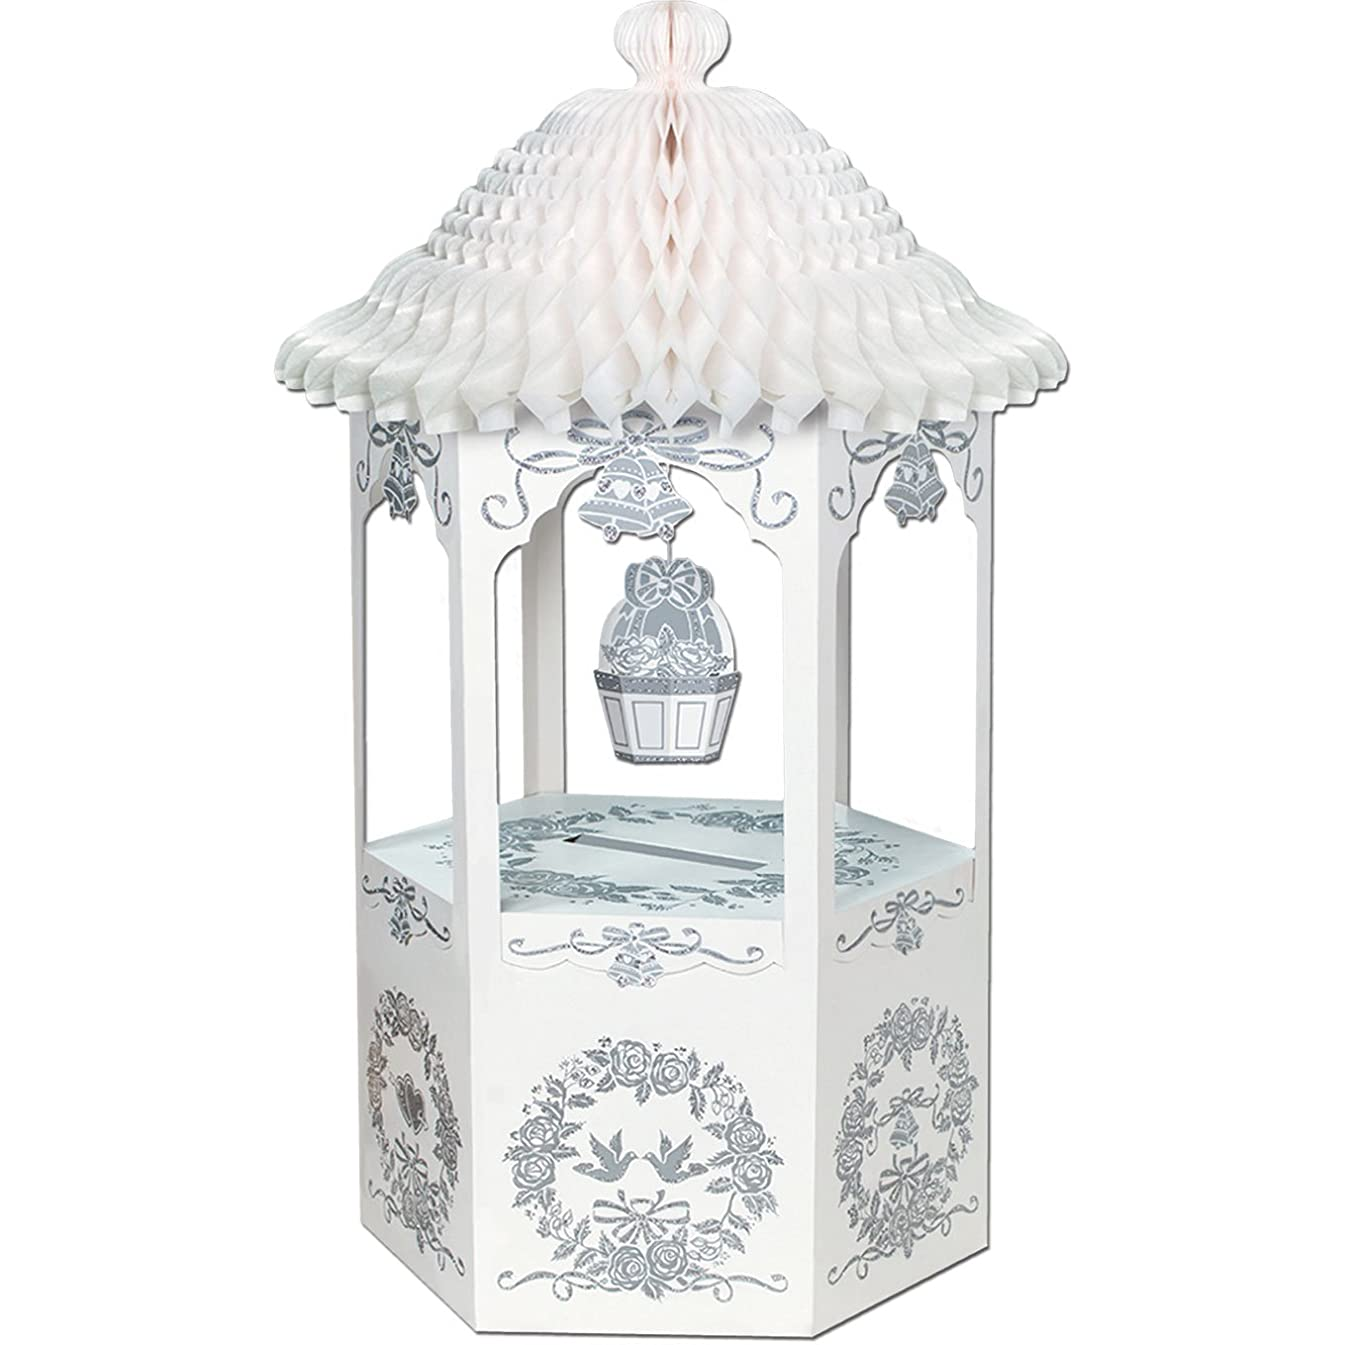 Wishing Well w/Tissue Top Party Accessory (1 count) (1/Pkg)